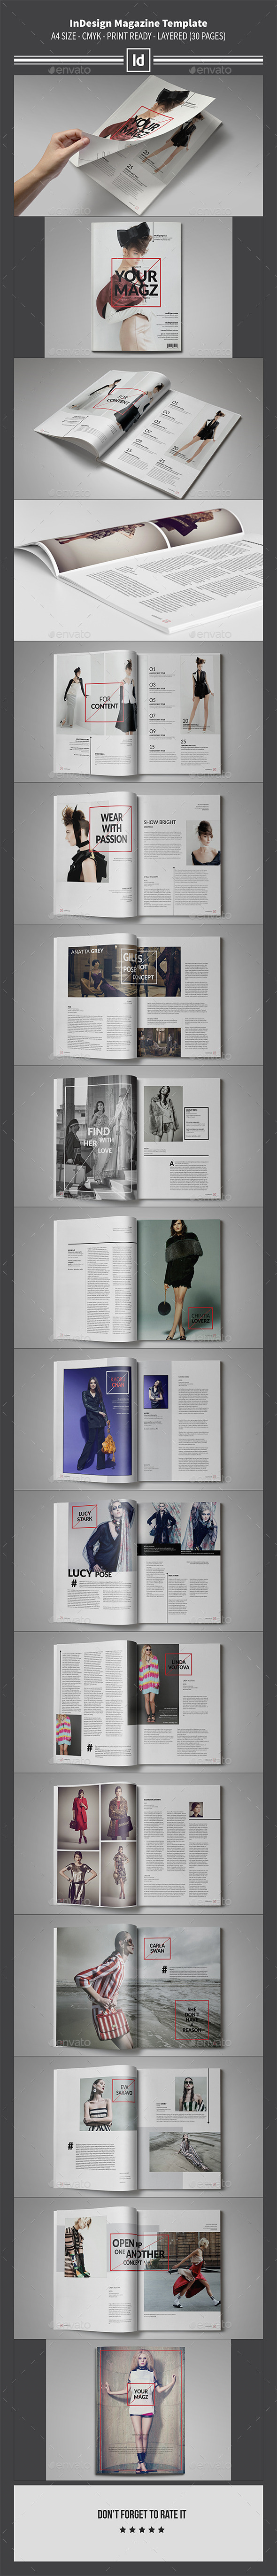 InDesign Magazine Template 30 Pages - Magazines Print Templates